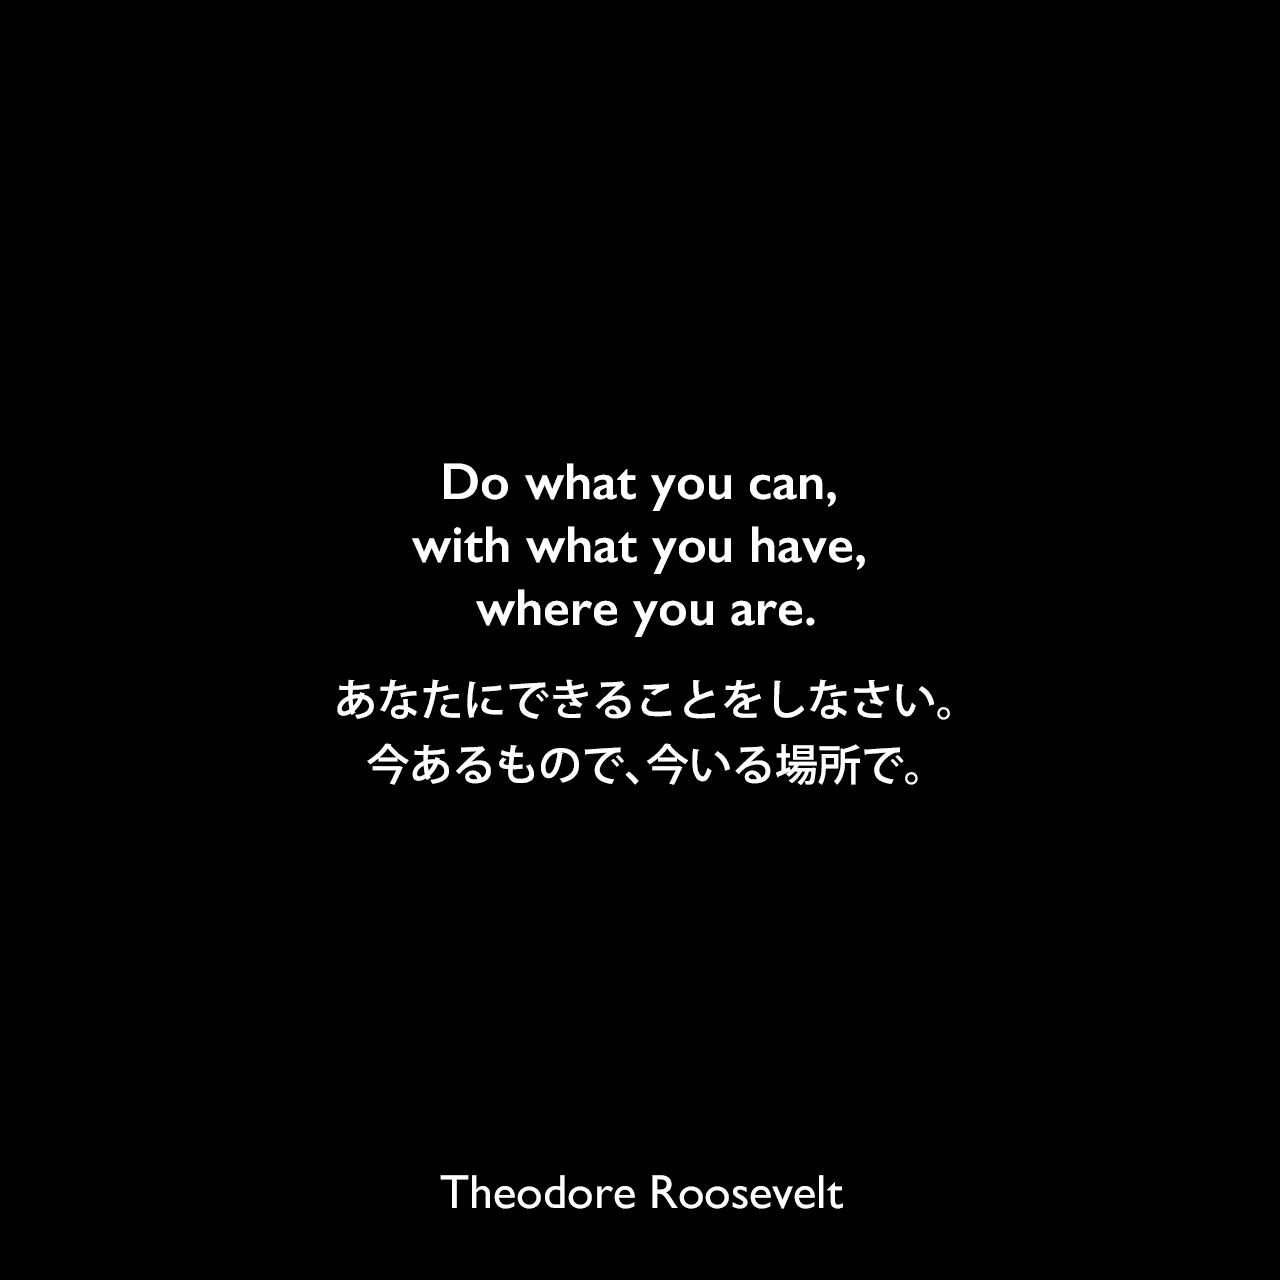 Do what you can, with what you have, where you are.あなたにできることをしなさい。今あるもので、今いる場所で。Theodore Roosevelt